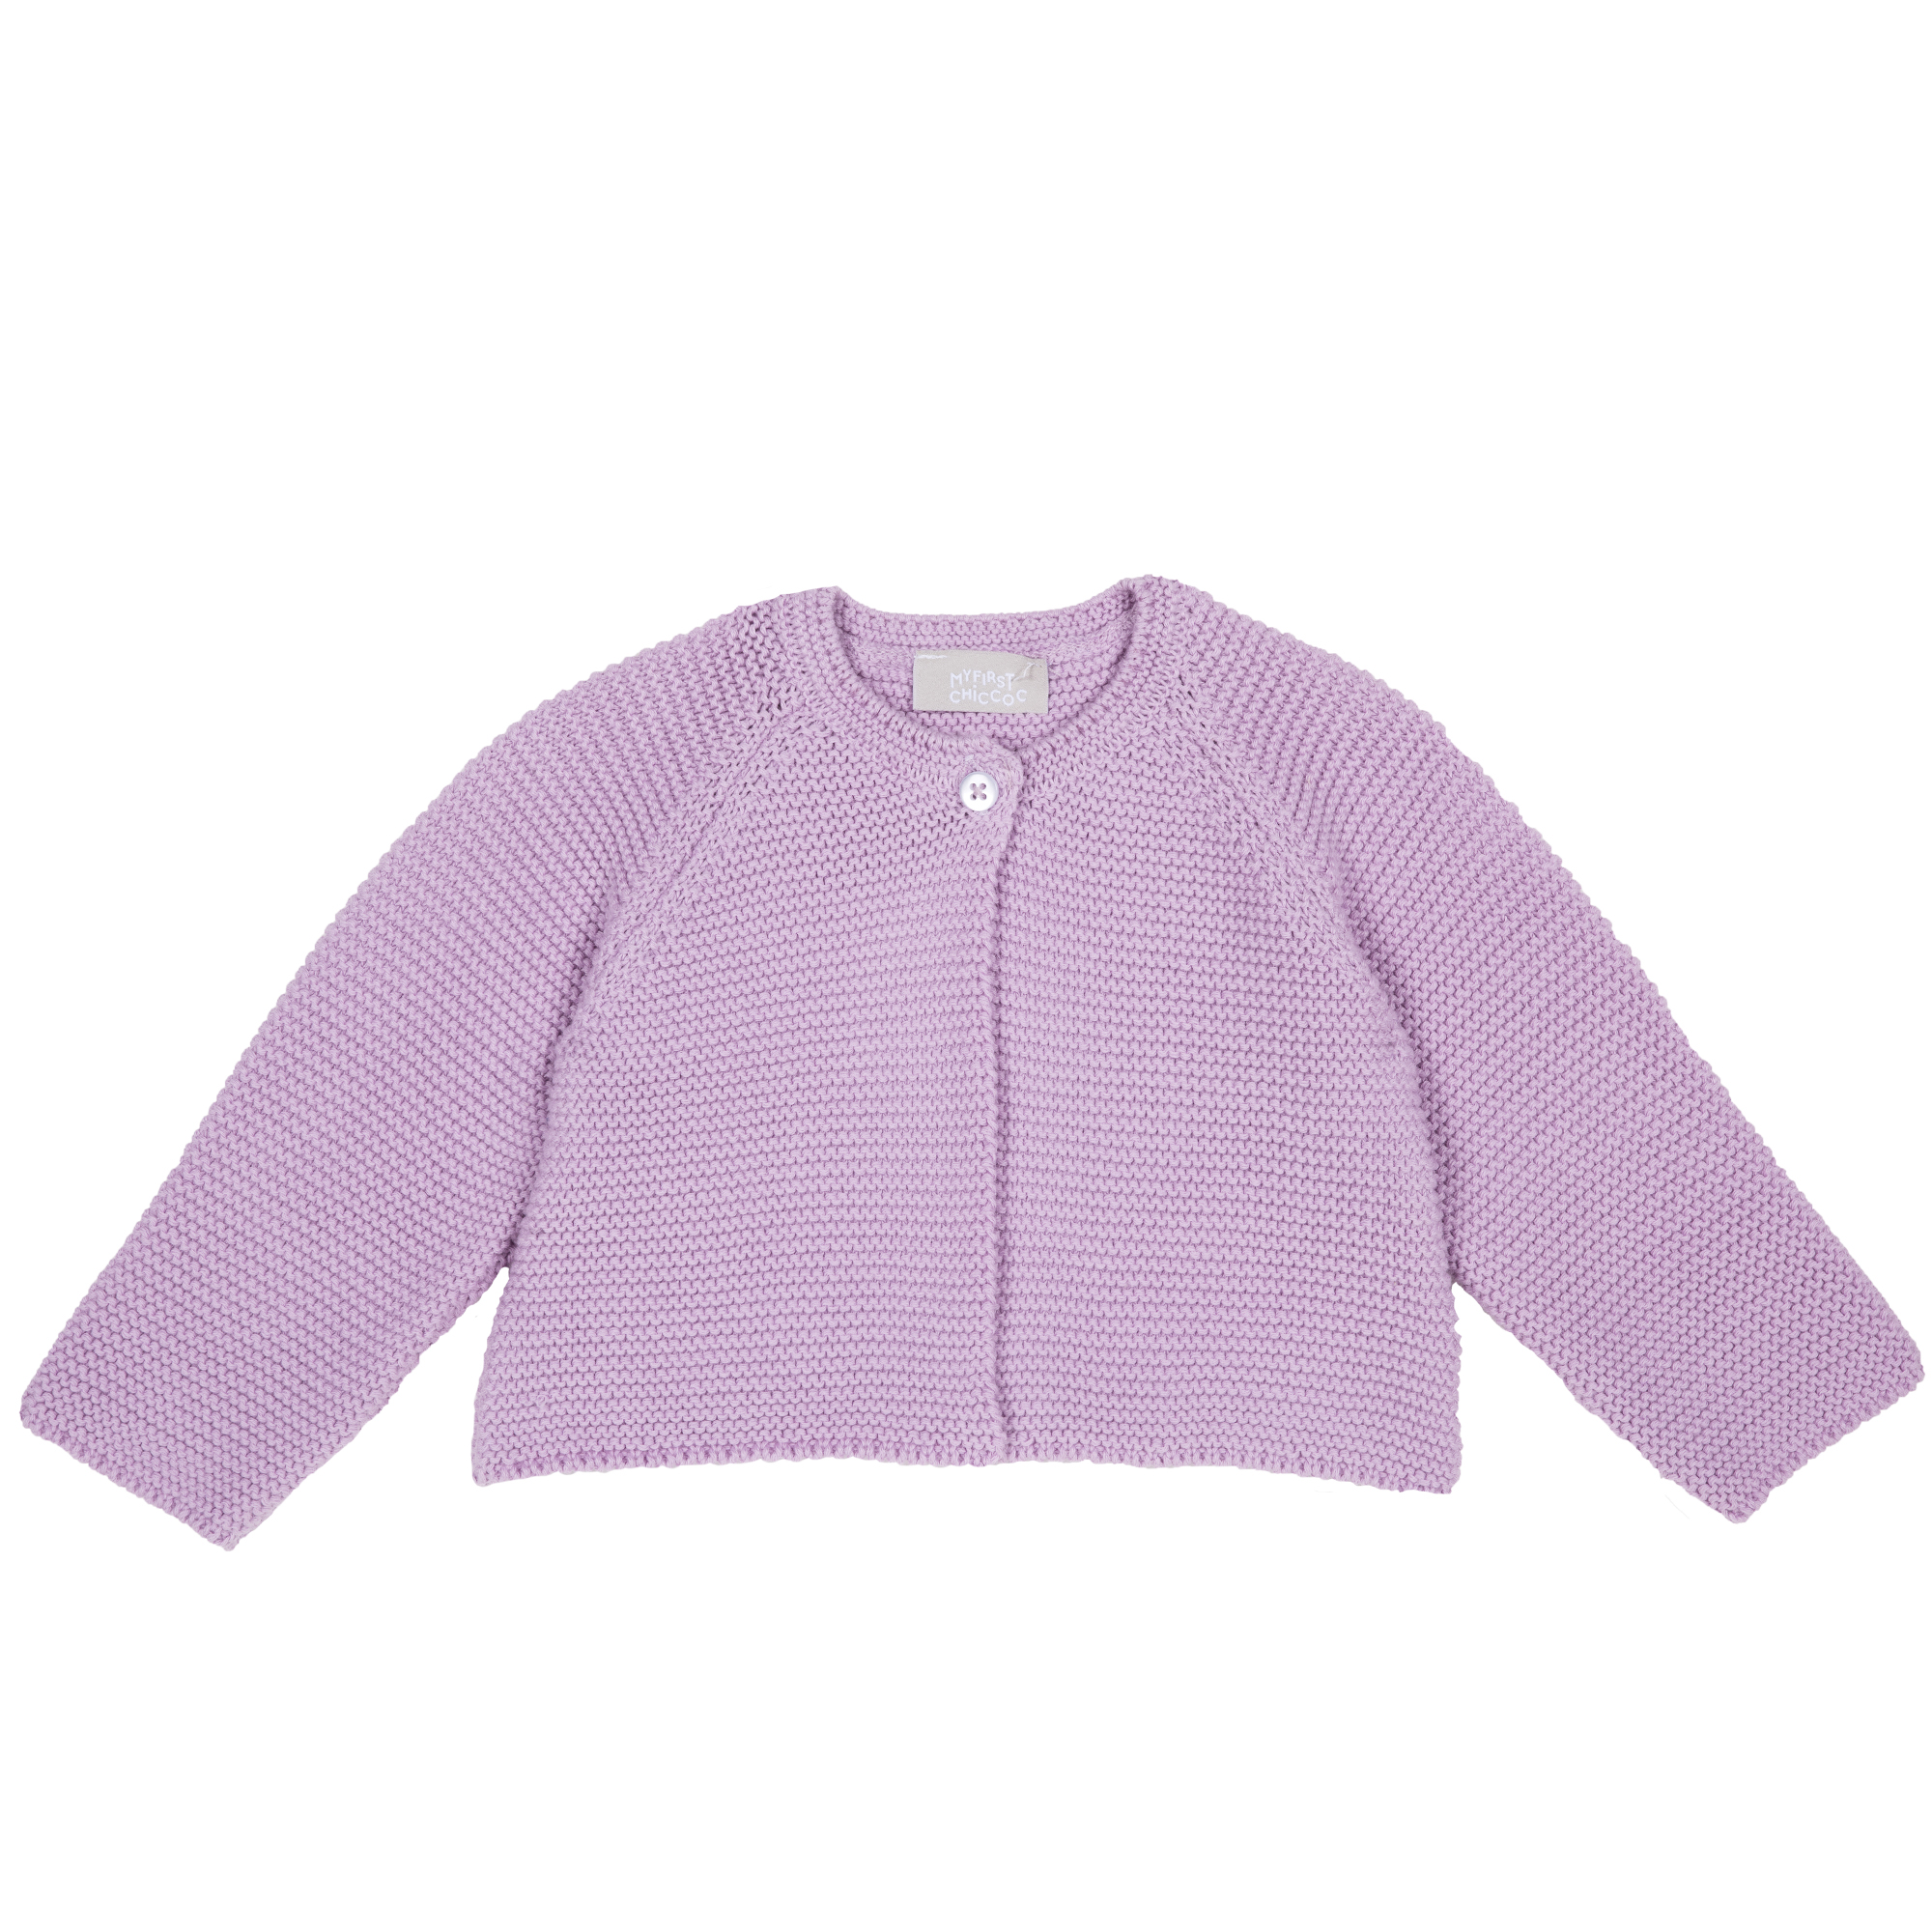 Cardigan copii Chicco, tricotat, lila, 96787